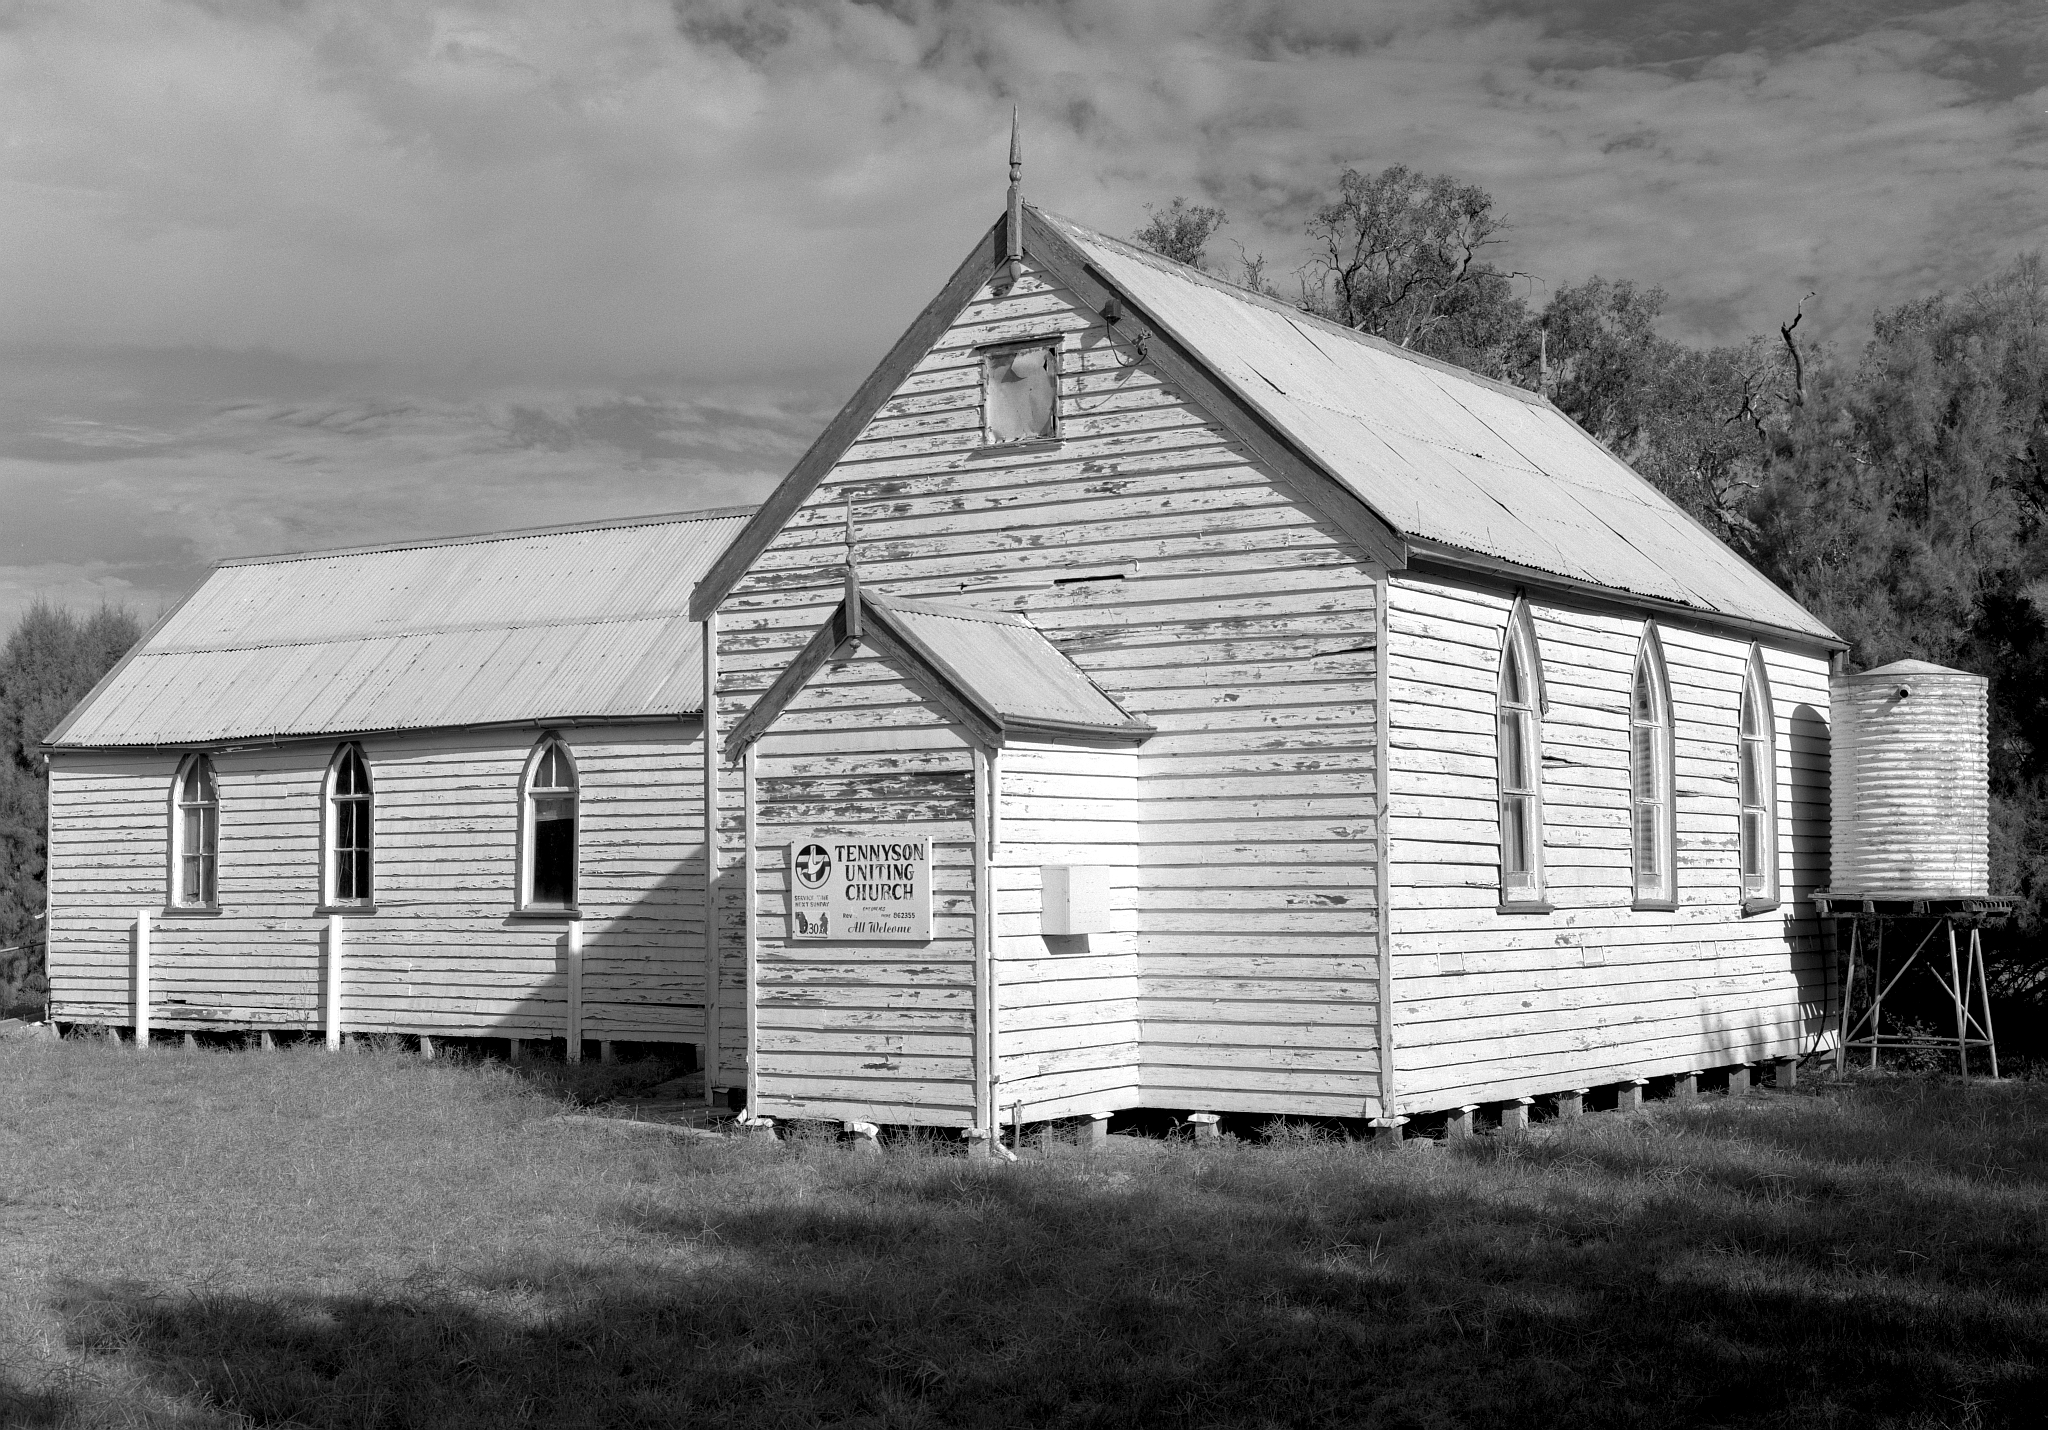 110011_Tennyson_Uniting_Church_FP4_150_Orange_Filter_1-30_f22_004_web.jpg